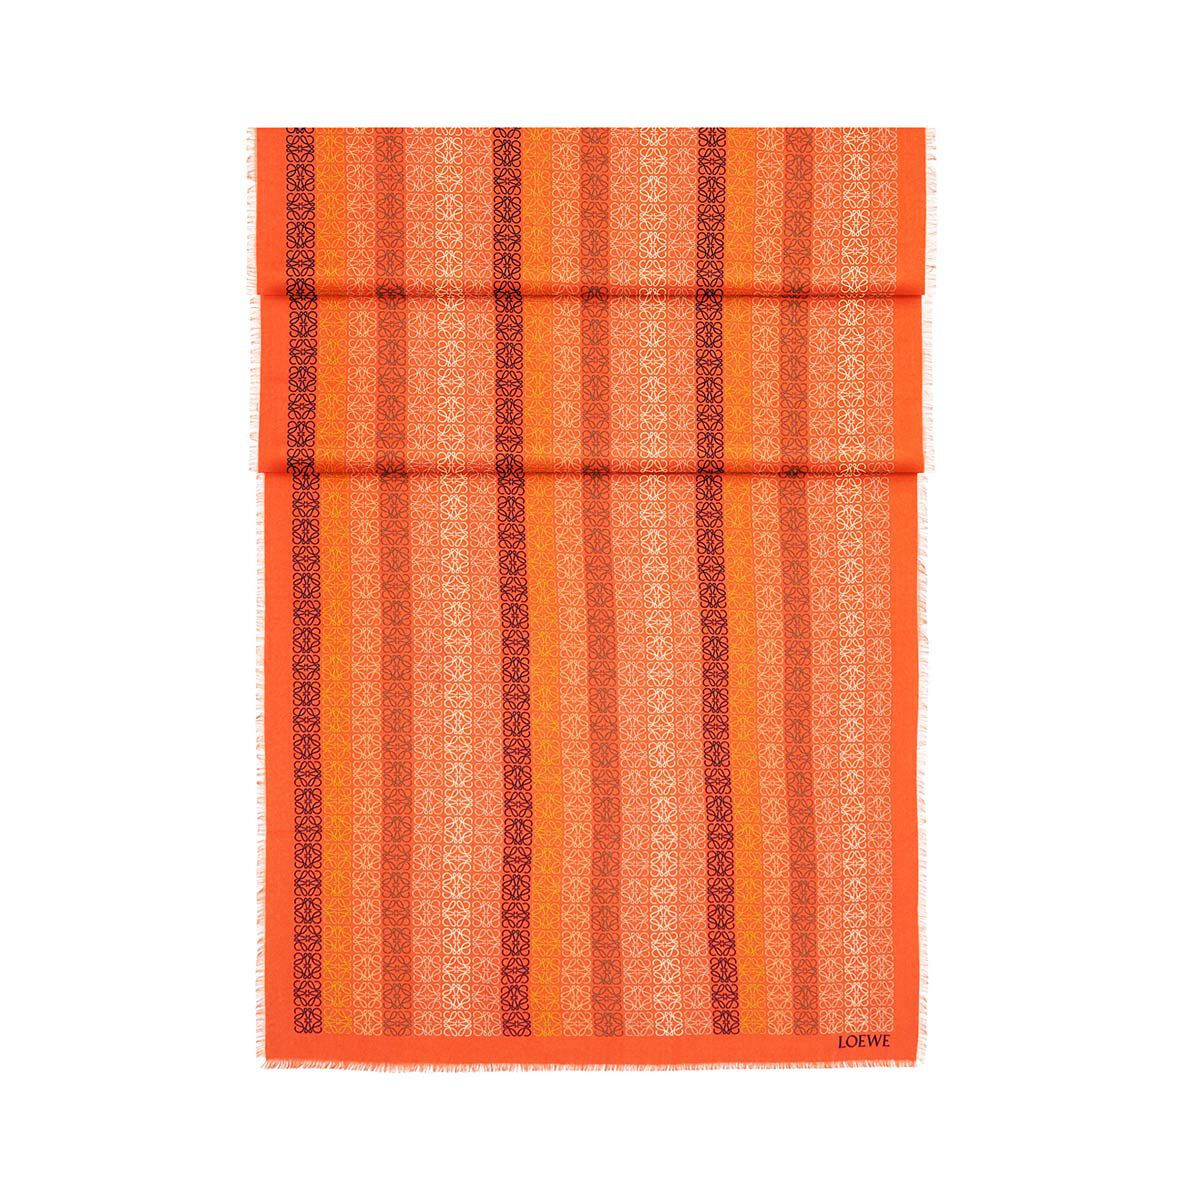 LOEWE 70X200 Scarf Anagram In Lines orange/multicolour all